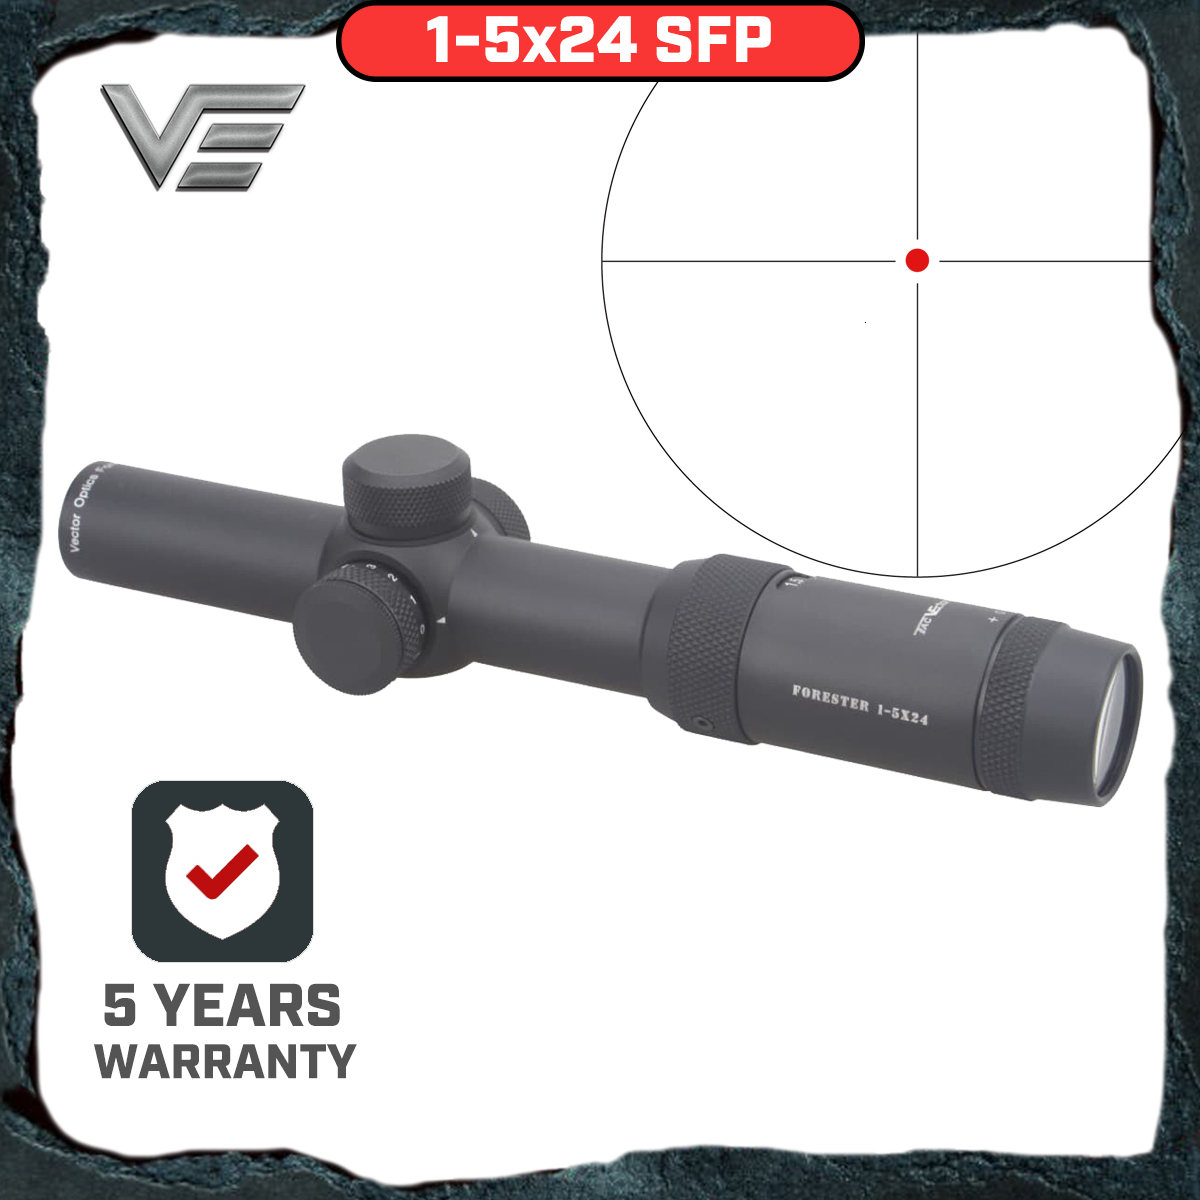 Vector Optics Forester 1-5X24 IR Rifle Scope Super Bright Clear Edgeless Image High Quingity 30mm Rilfescope For Hunting Shoot